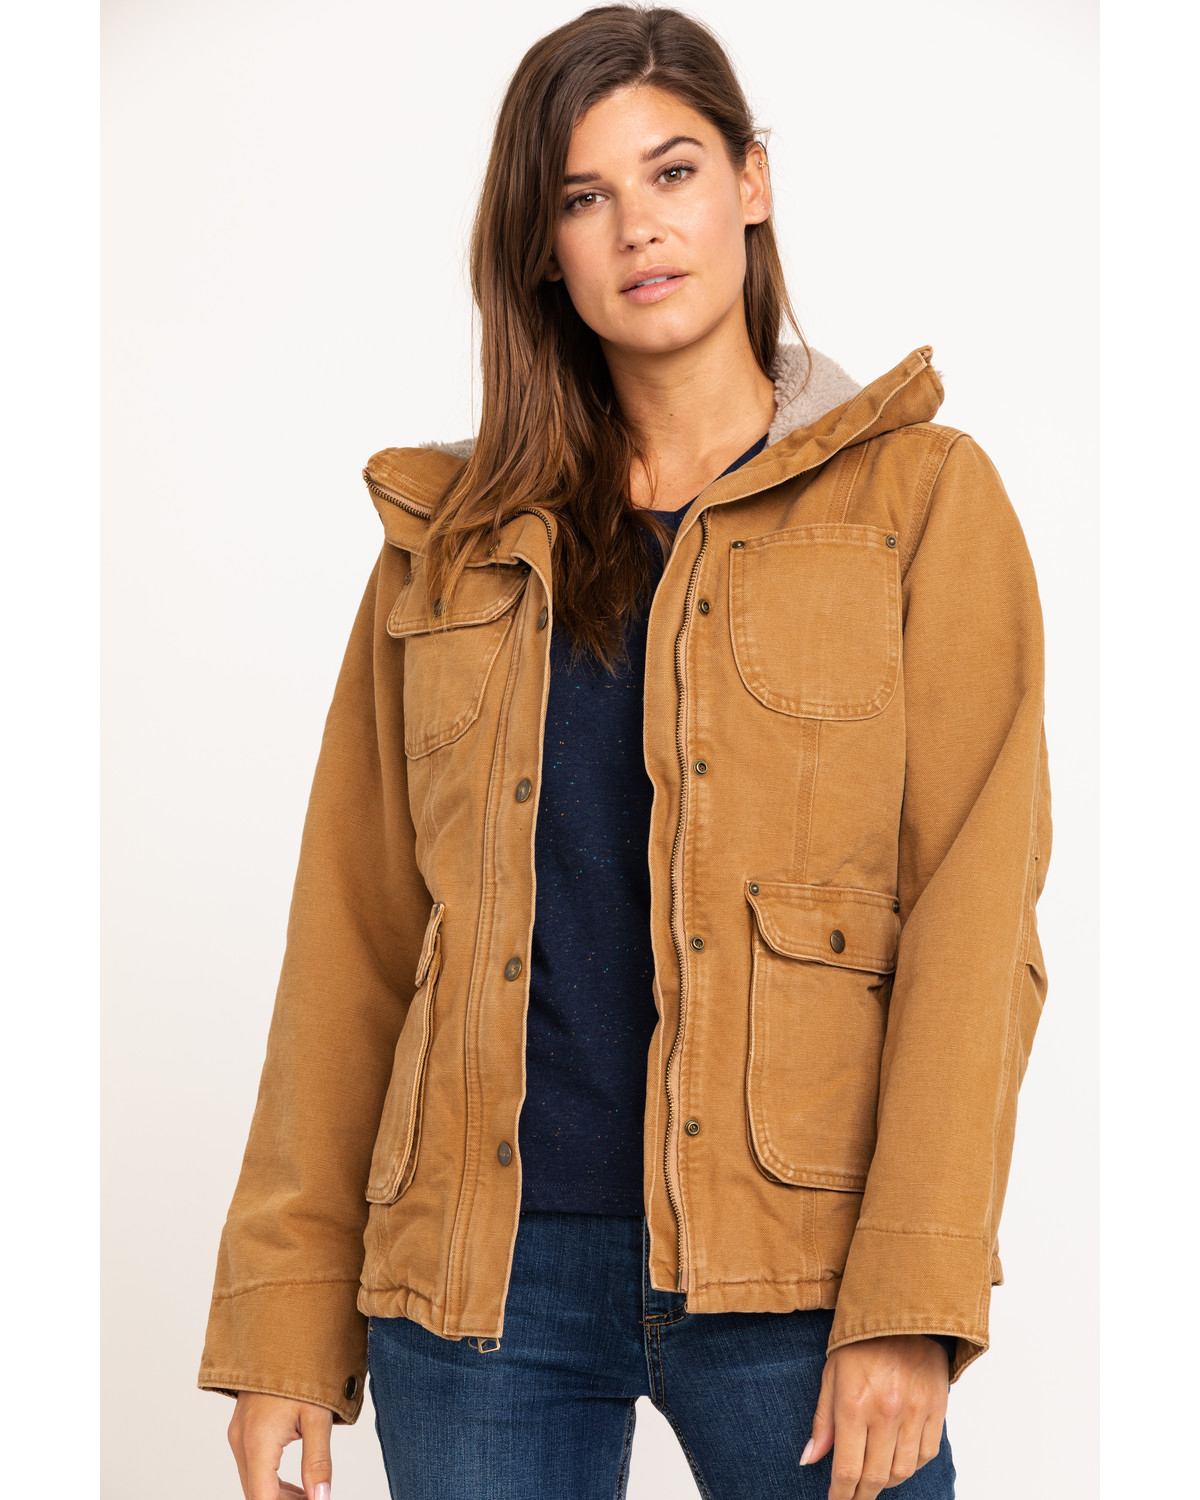 Carhartt coats for women